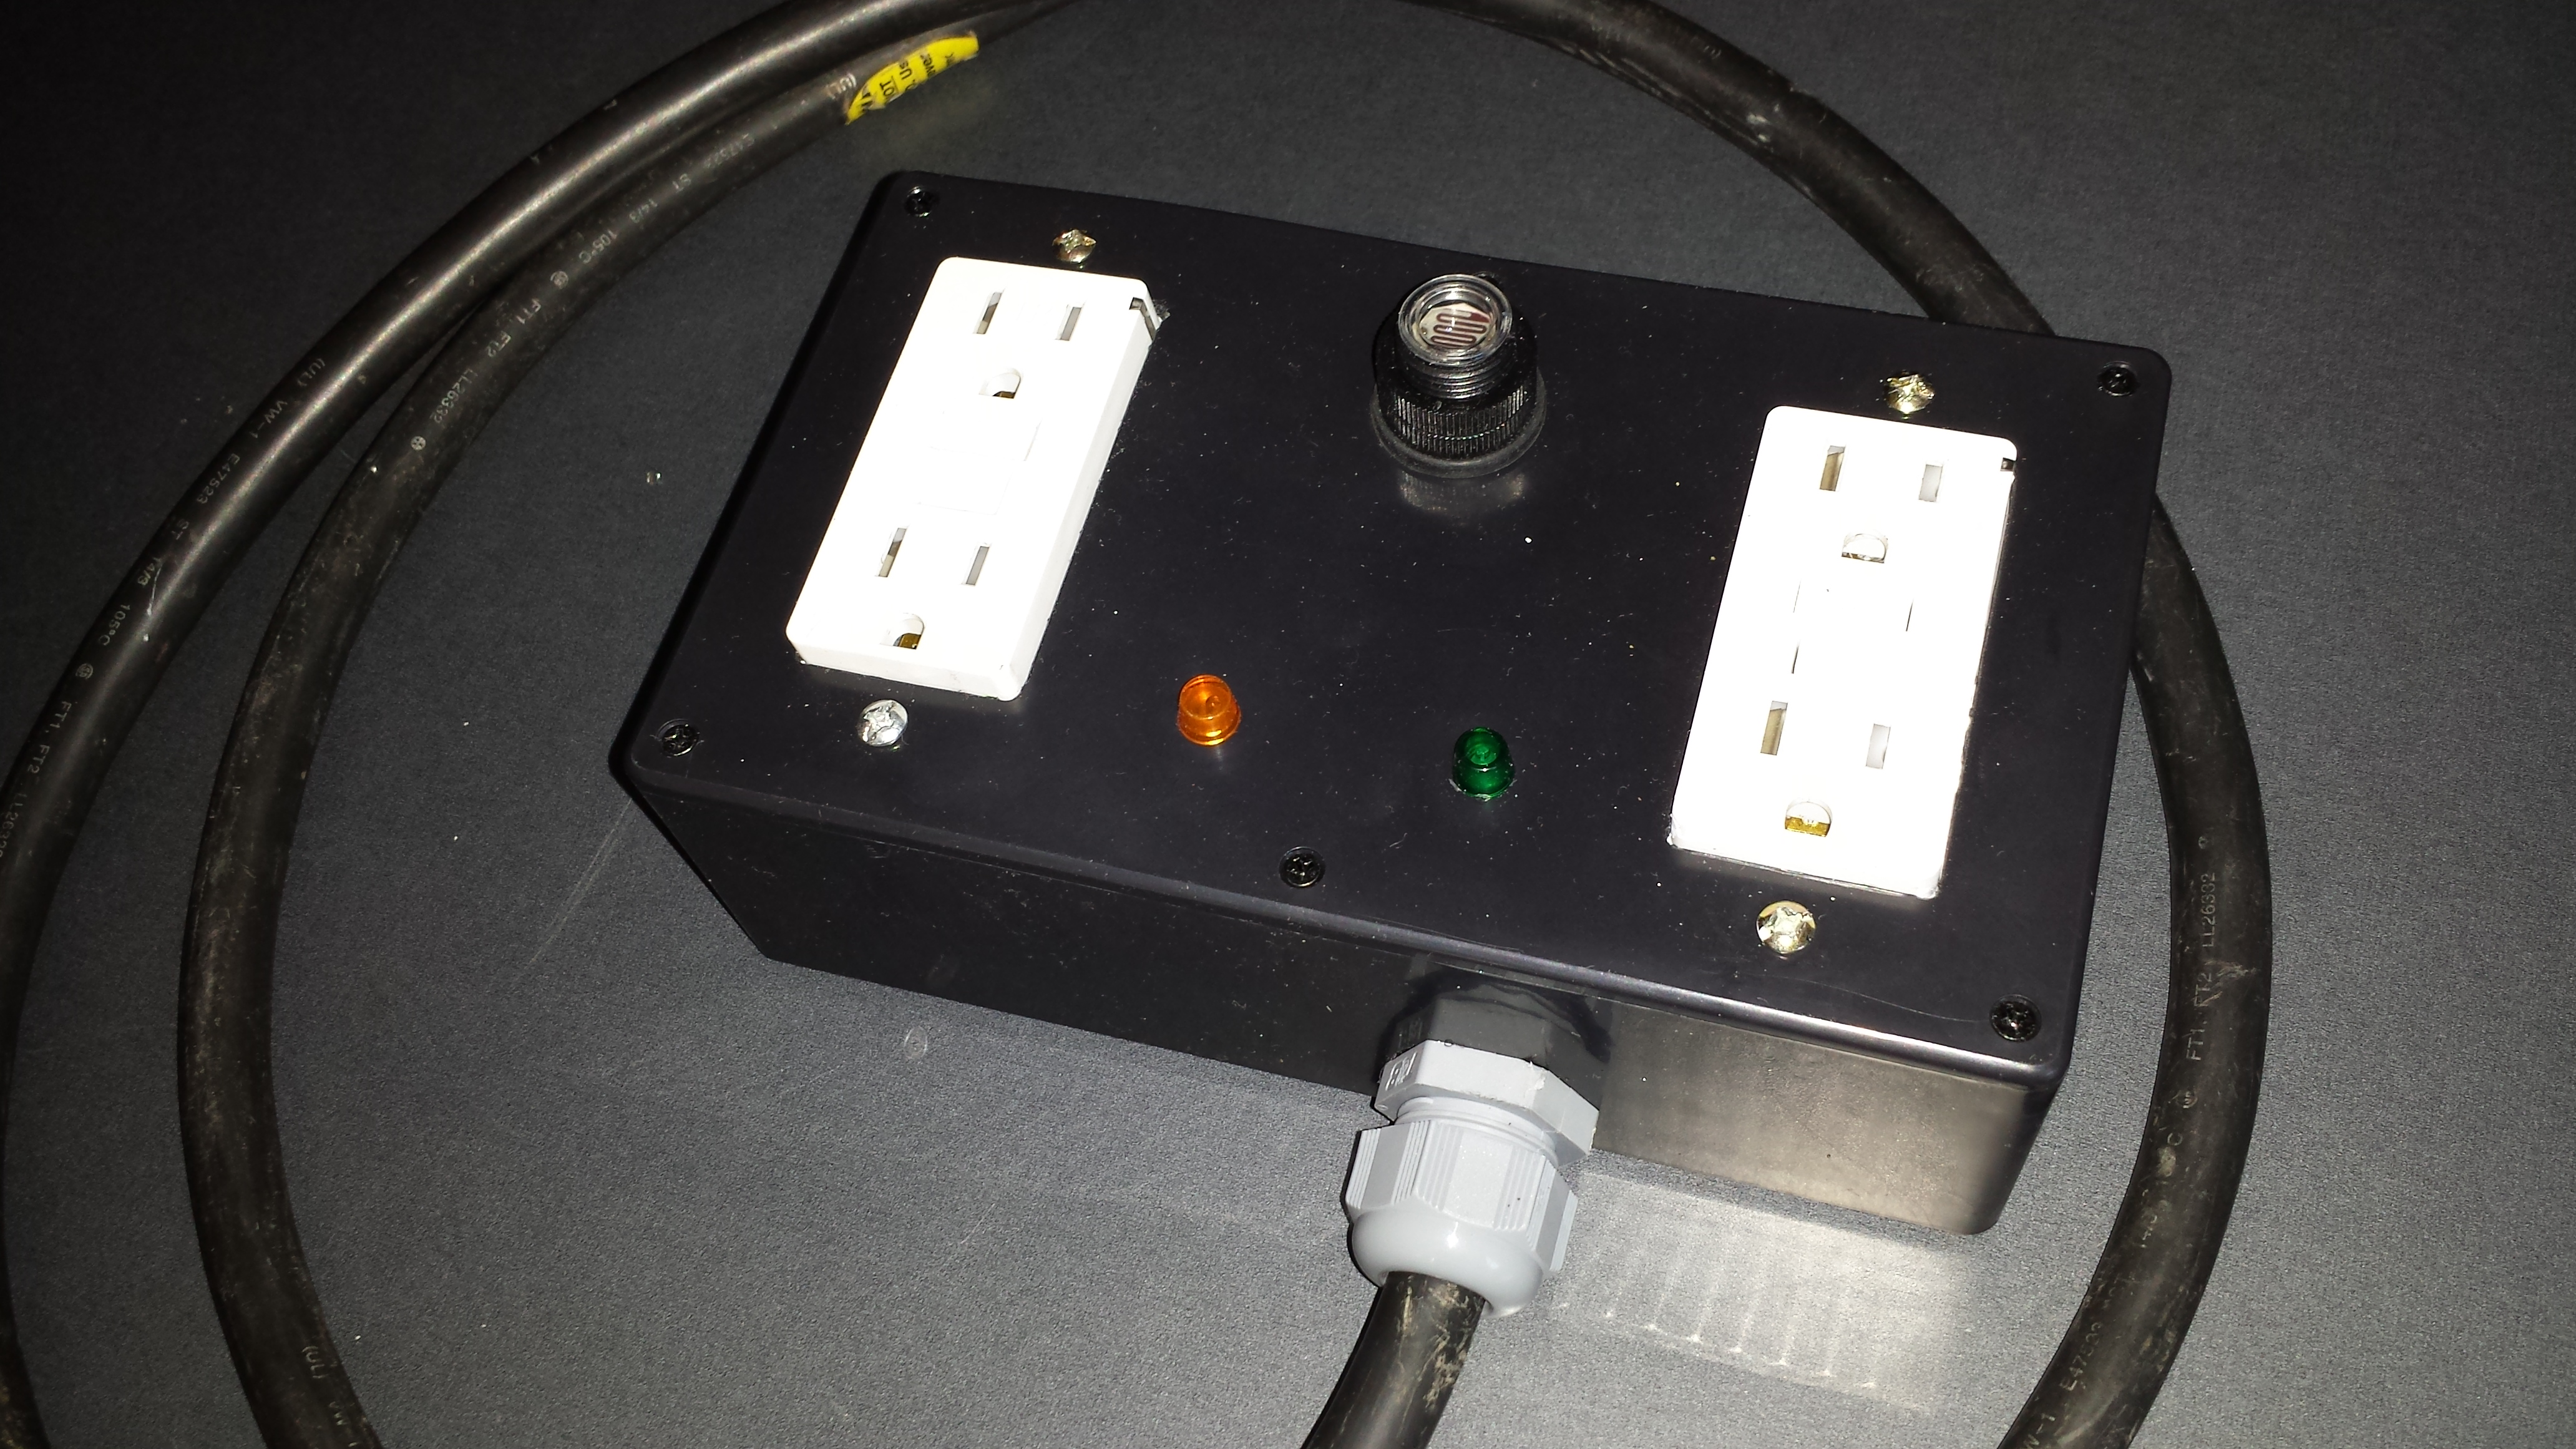 hight resolution of photo sensor controlled outlet turns on or off at daylight or nightime